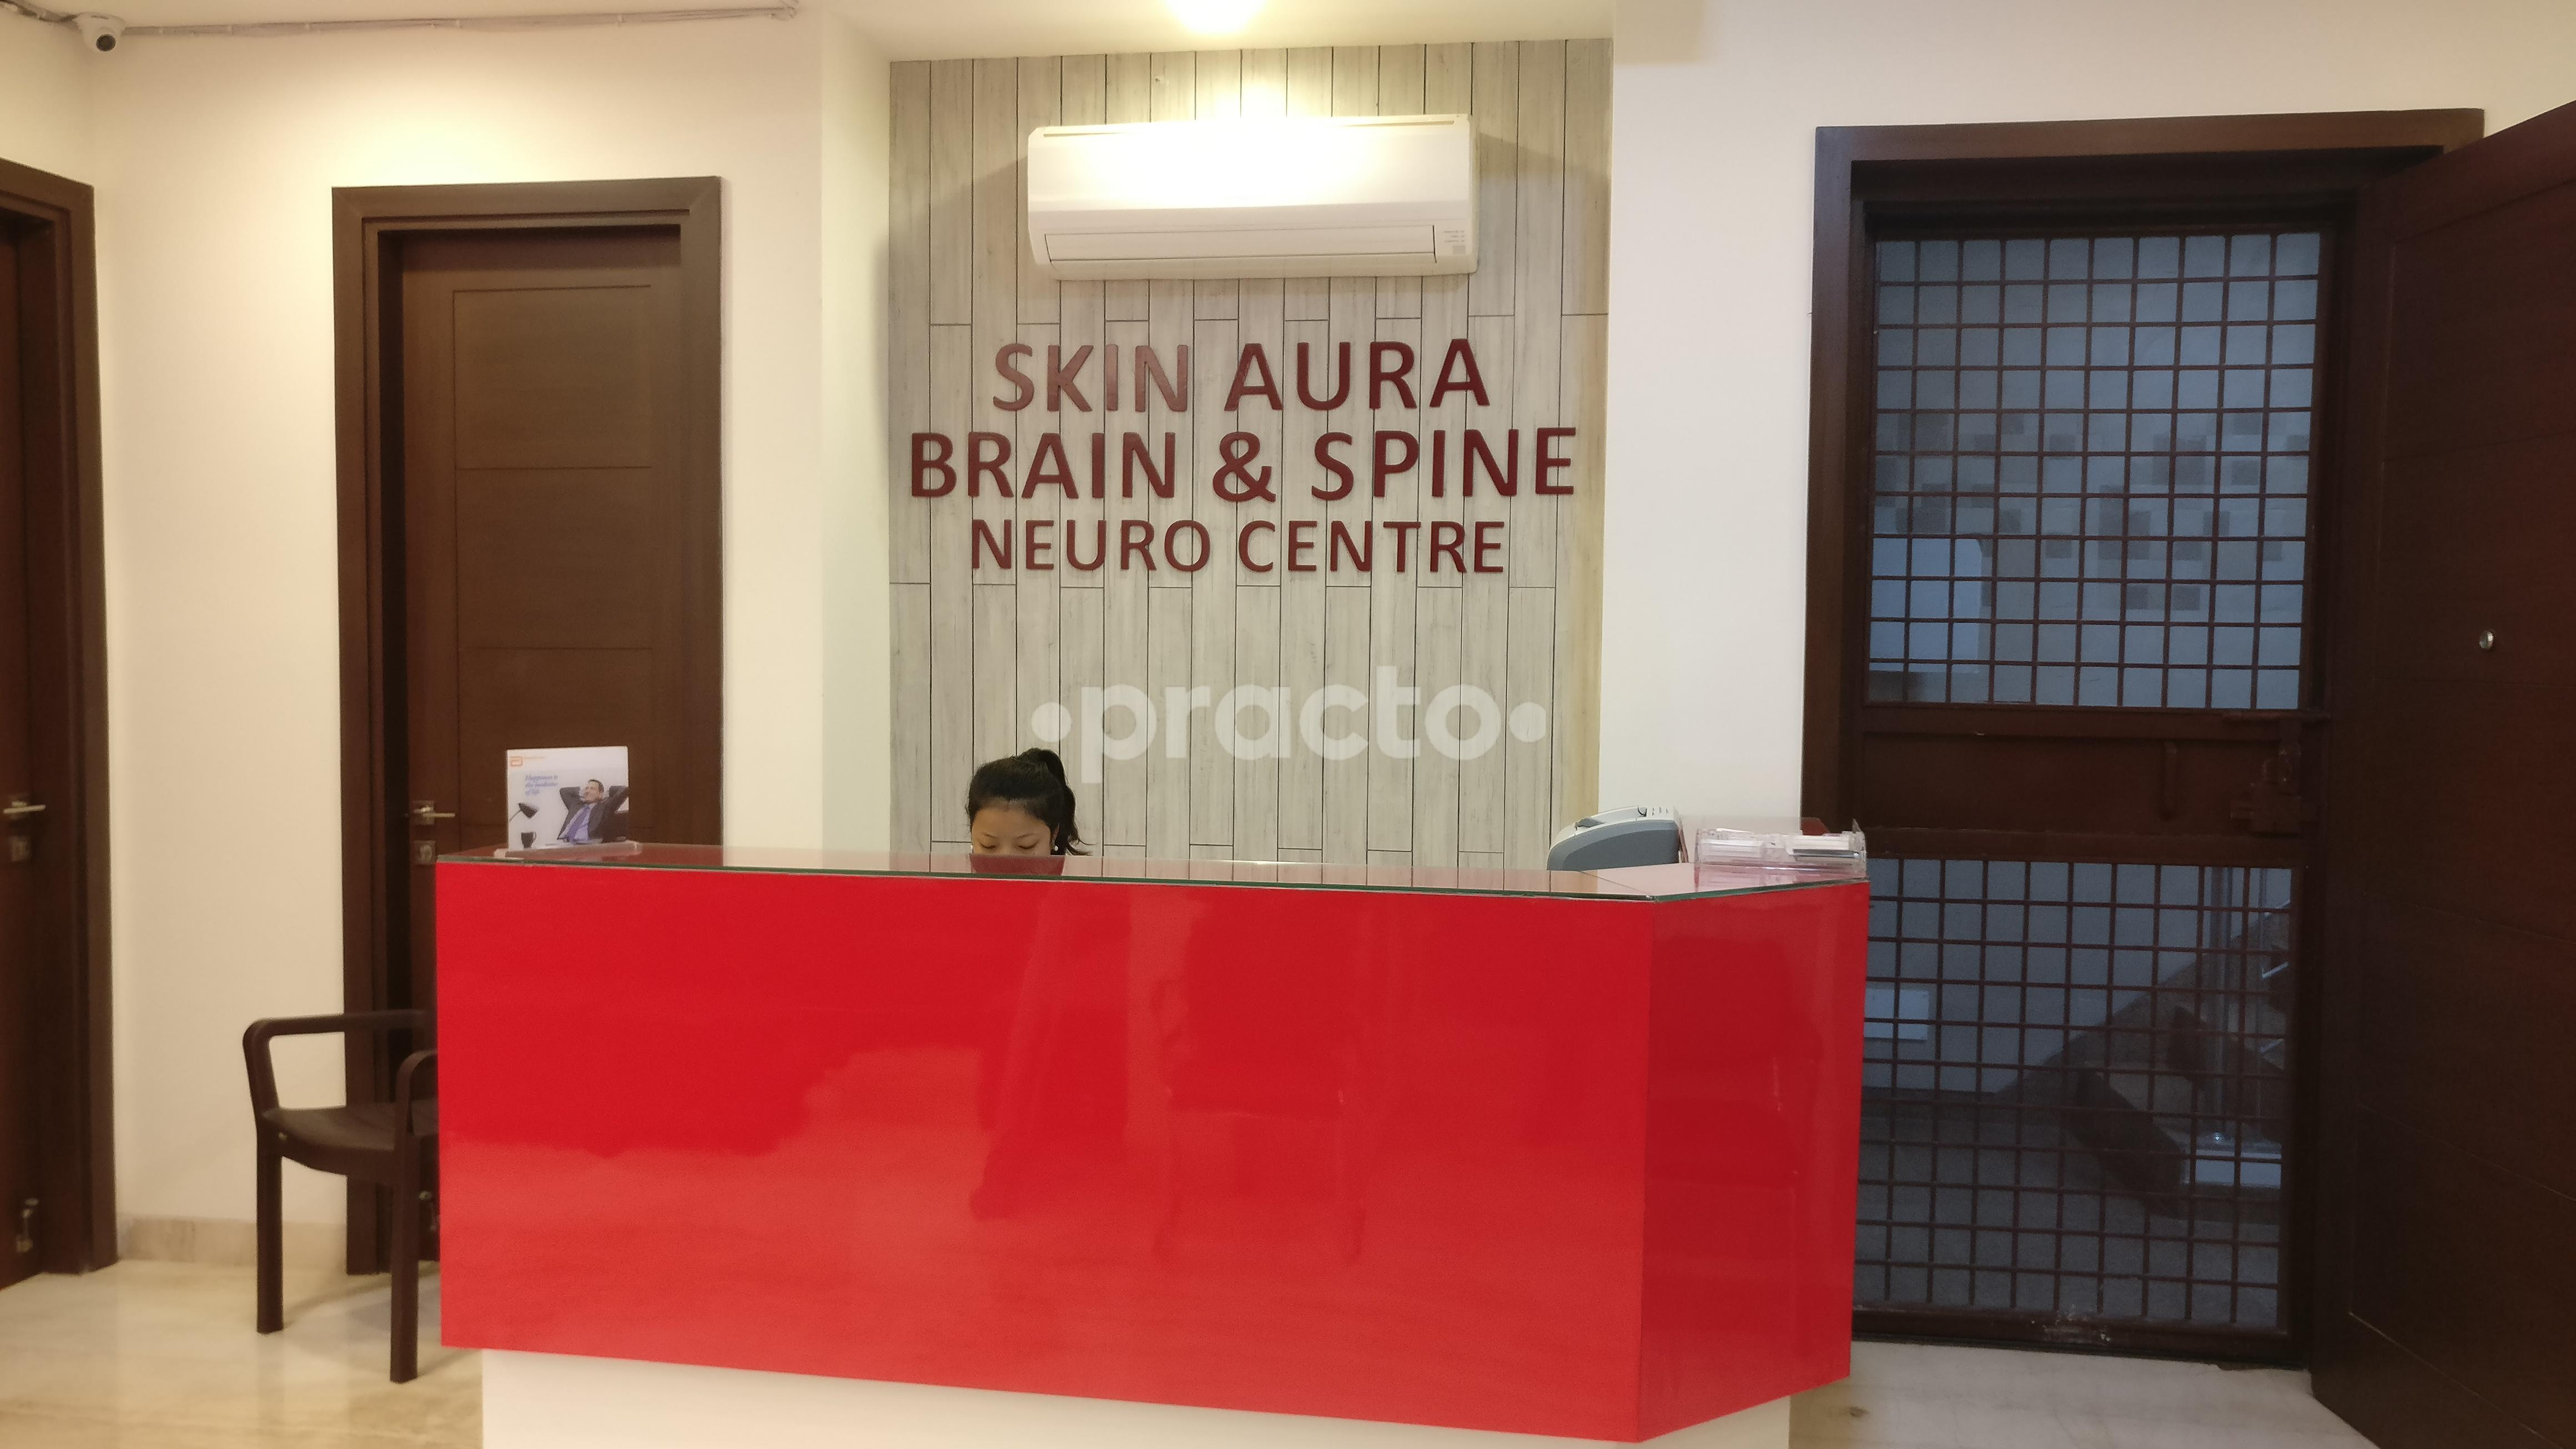 Best Neurology Clinics in Gurgaon - Book Appointment, View Reviews